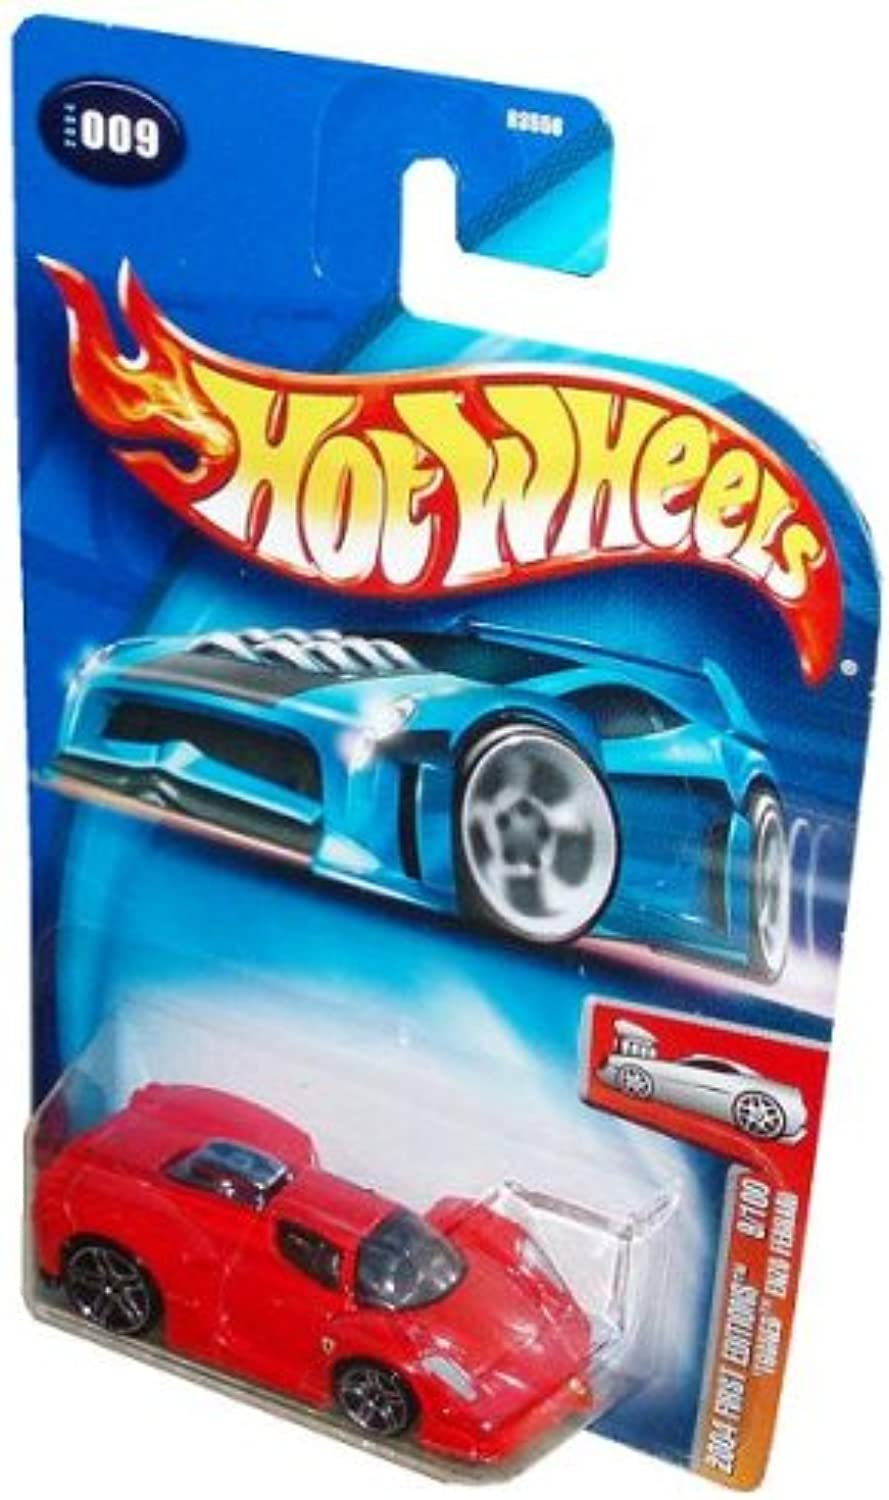 Mattel Hot Wheels 2004 First Editions Series 1 64 Scale Die Cast Metal Car   9 of 100 - Red Luxury Sport Coupe Tooned Enzo Ferrari